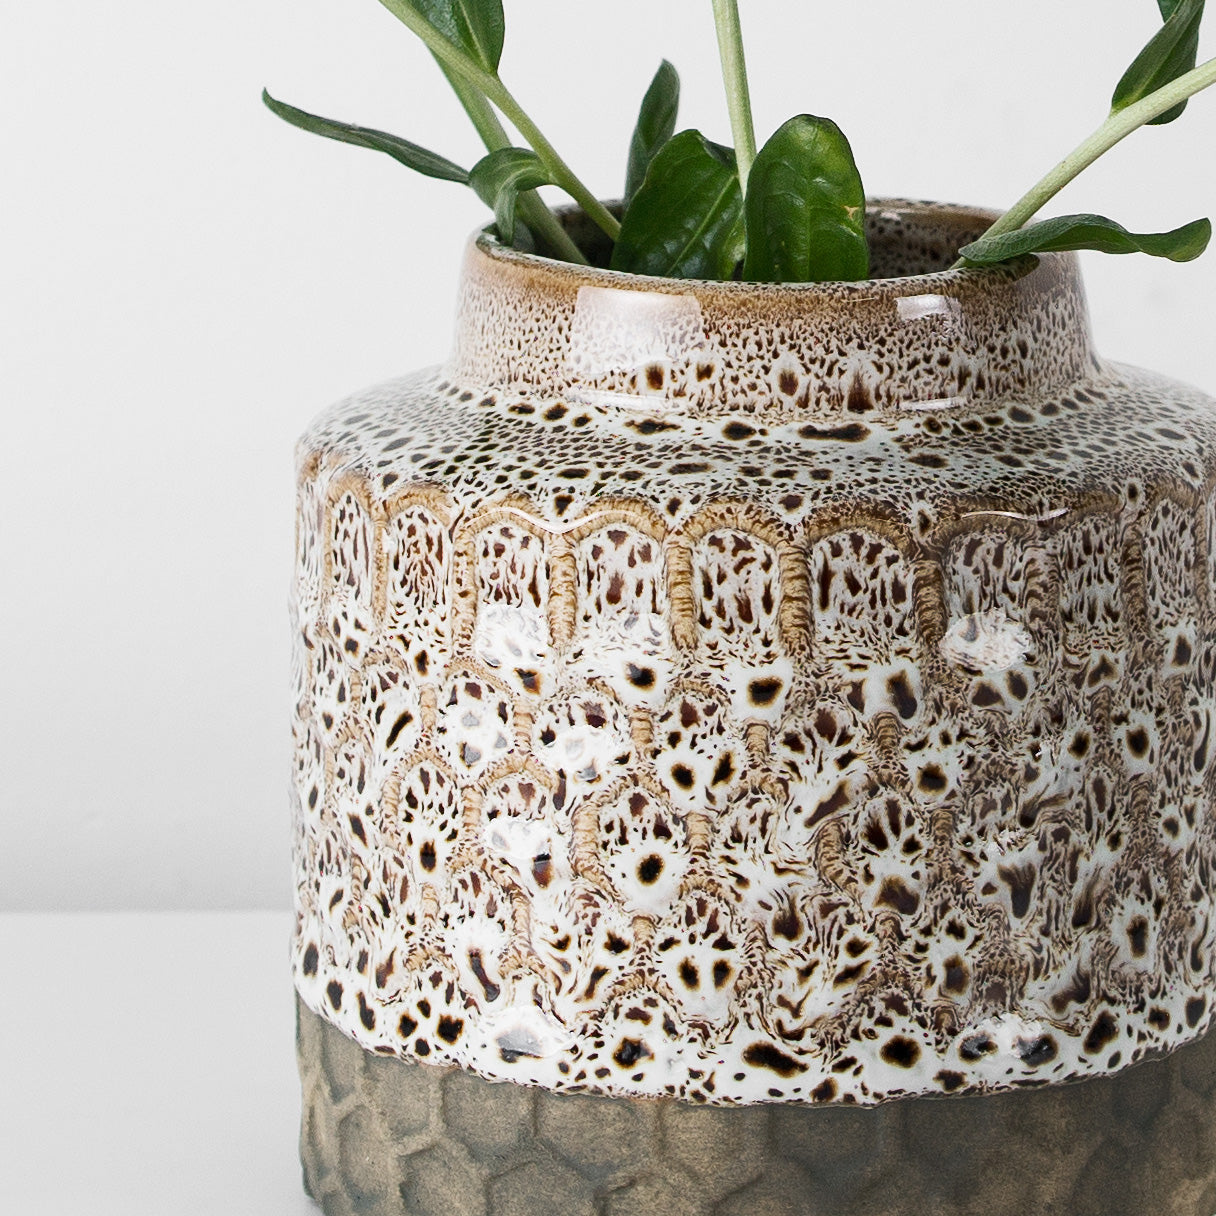 Stoneware decorative vase